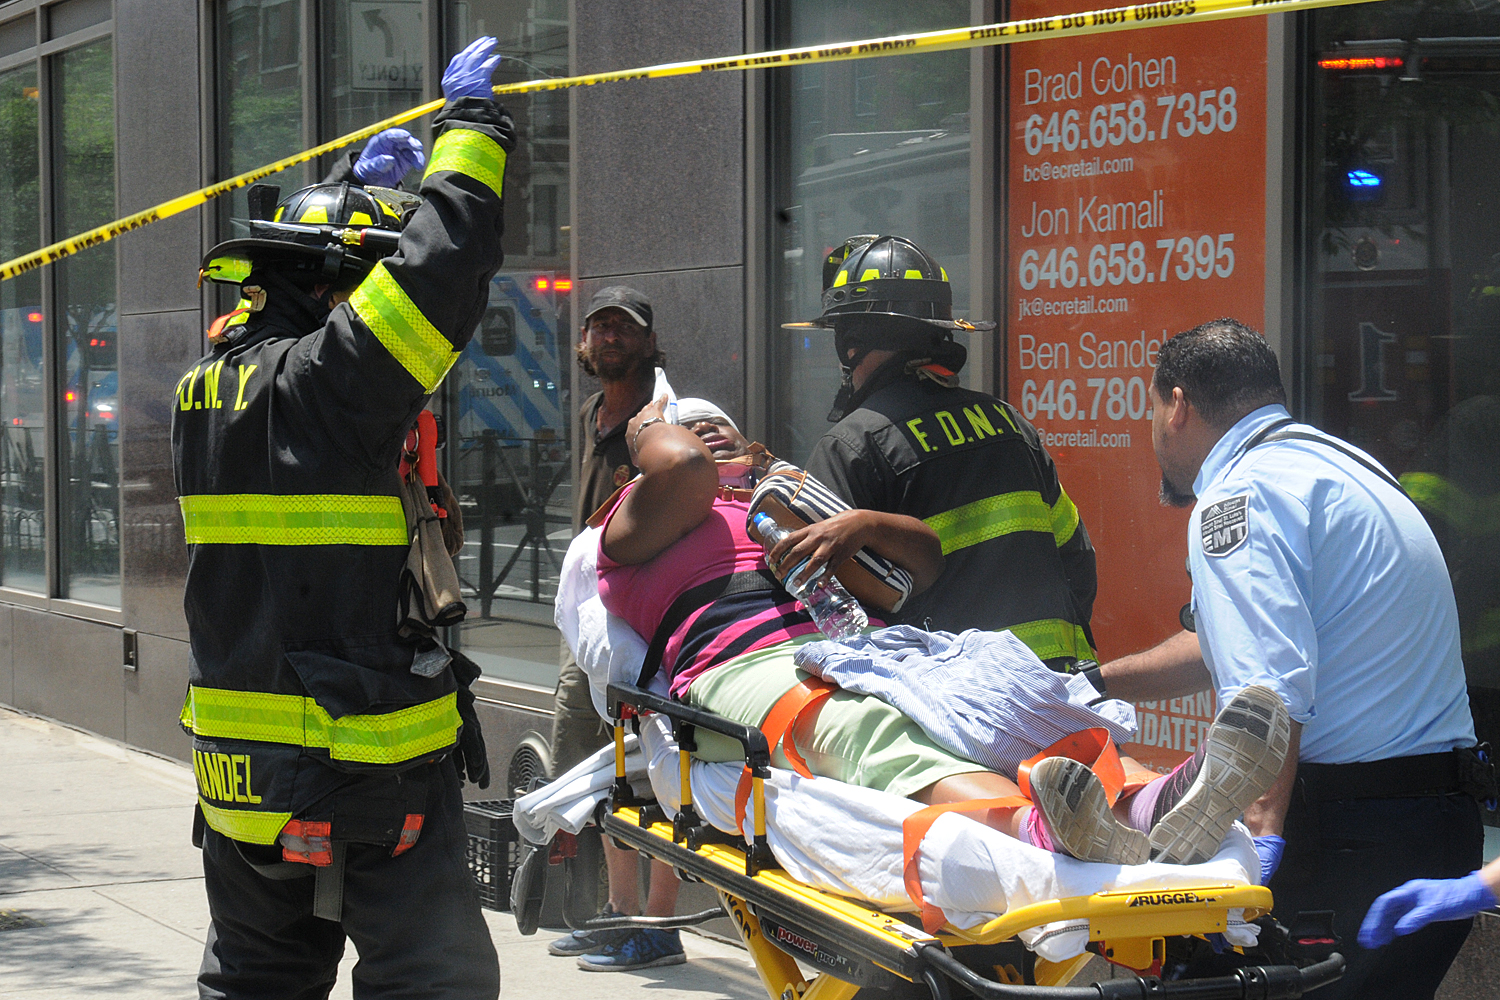 New York Fire Department: Vehicle jumps curb in Hell's Kitchen, 10 injured